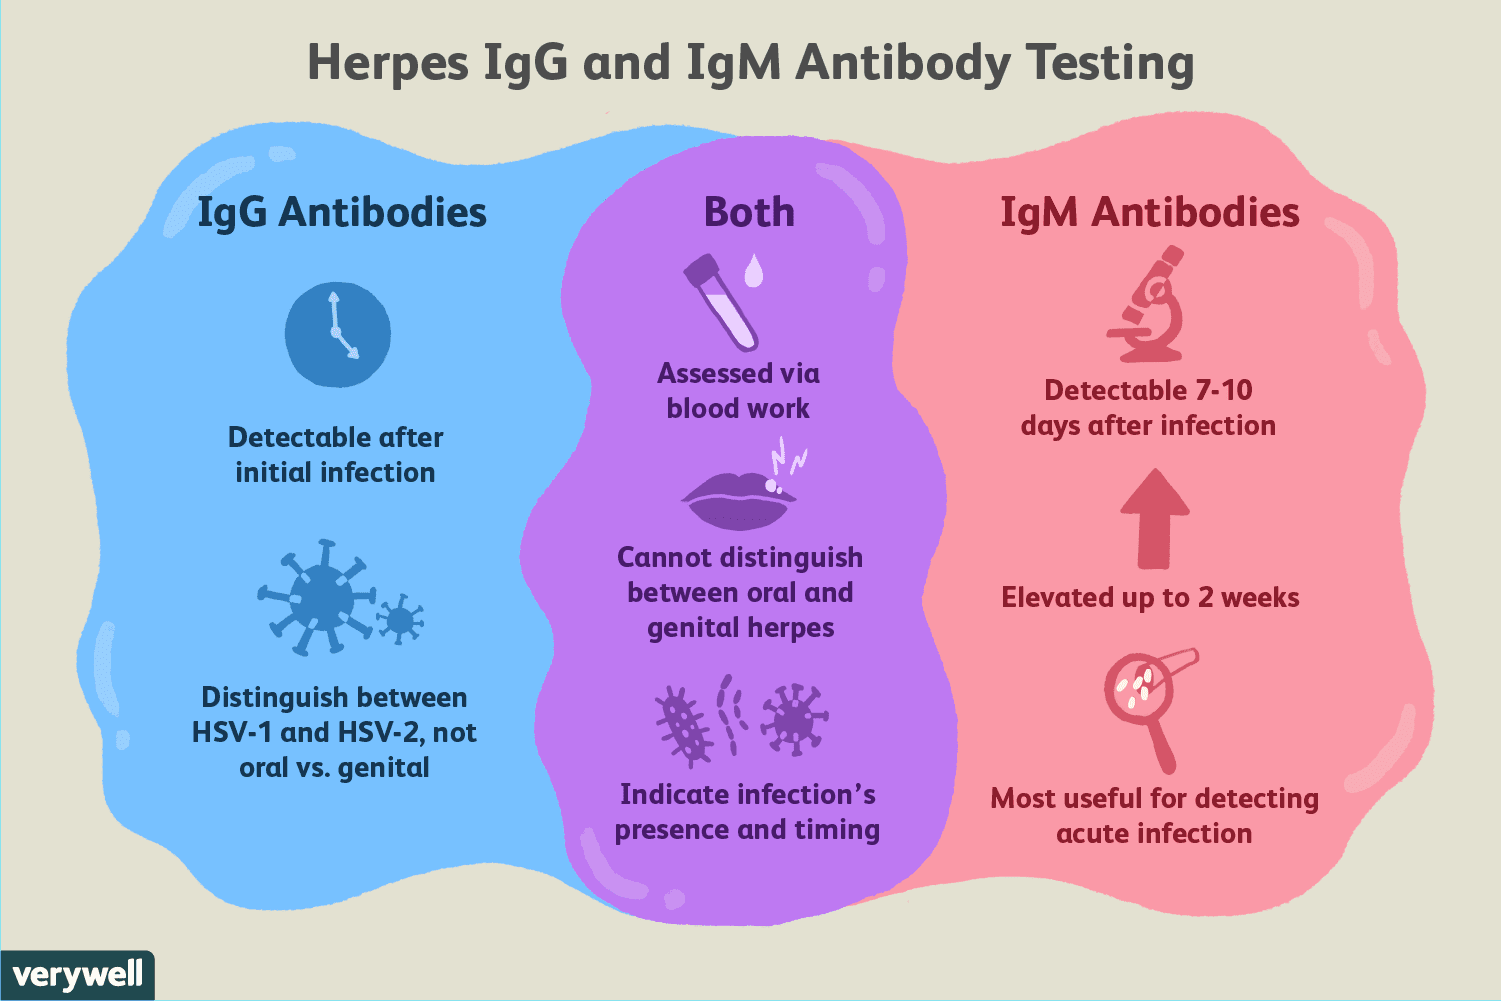 What Does A Positive Herpes Igg Blood Test Mean